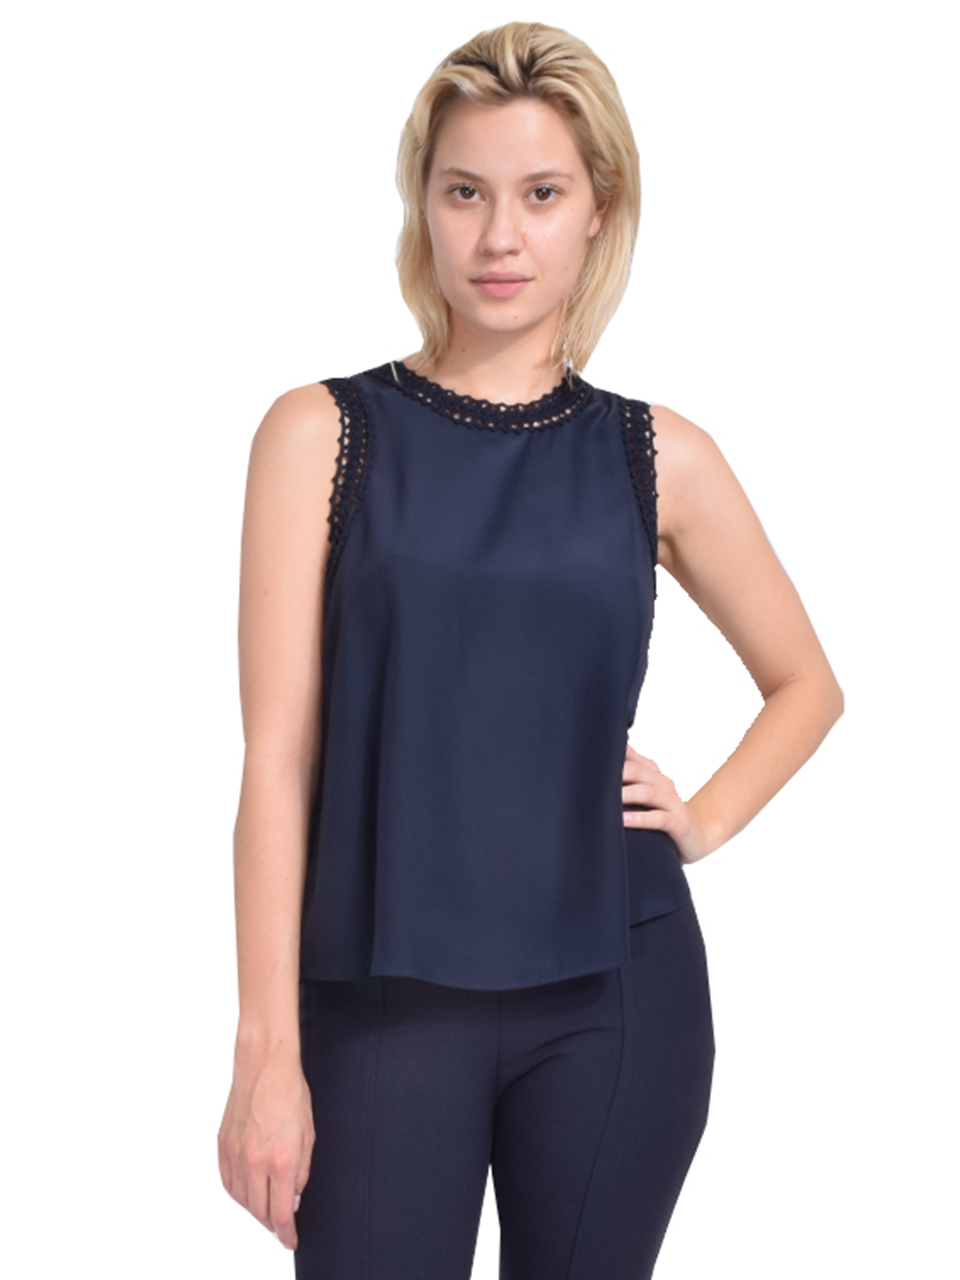 Cinq à Sept Ellina Top in Navy Front View  X1https://cdn11.bigcommerce.com/s-3wu6n/products/33221/images/109593/82__53293.1590631836.244.365.jpg?c=2X2